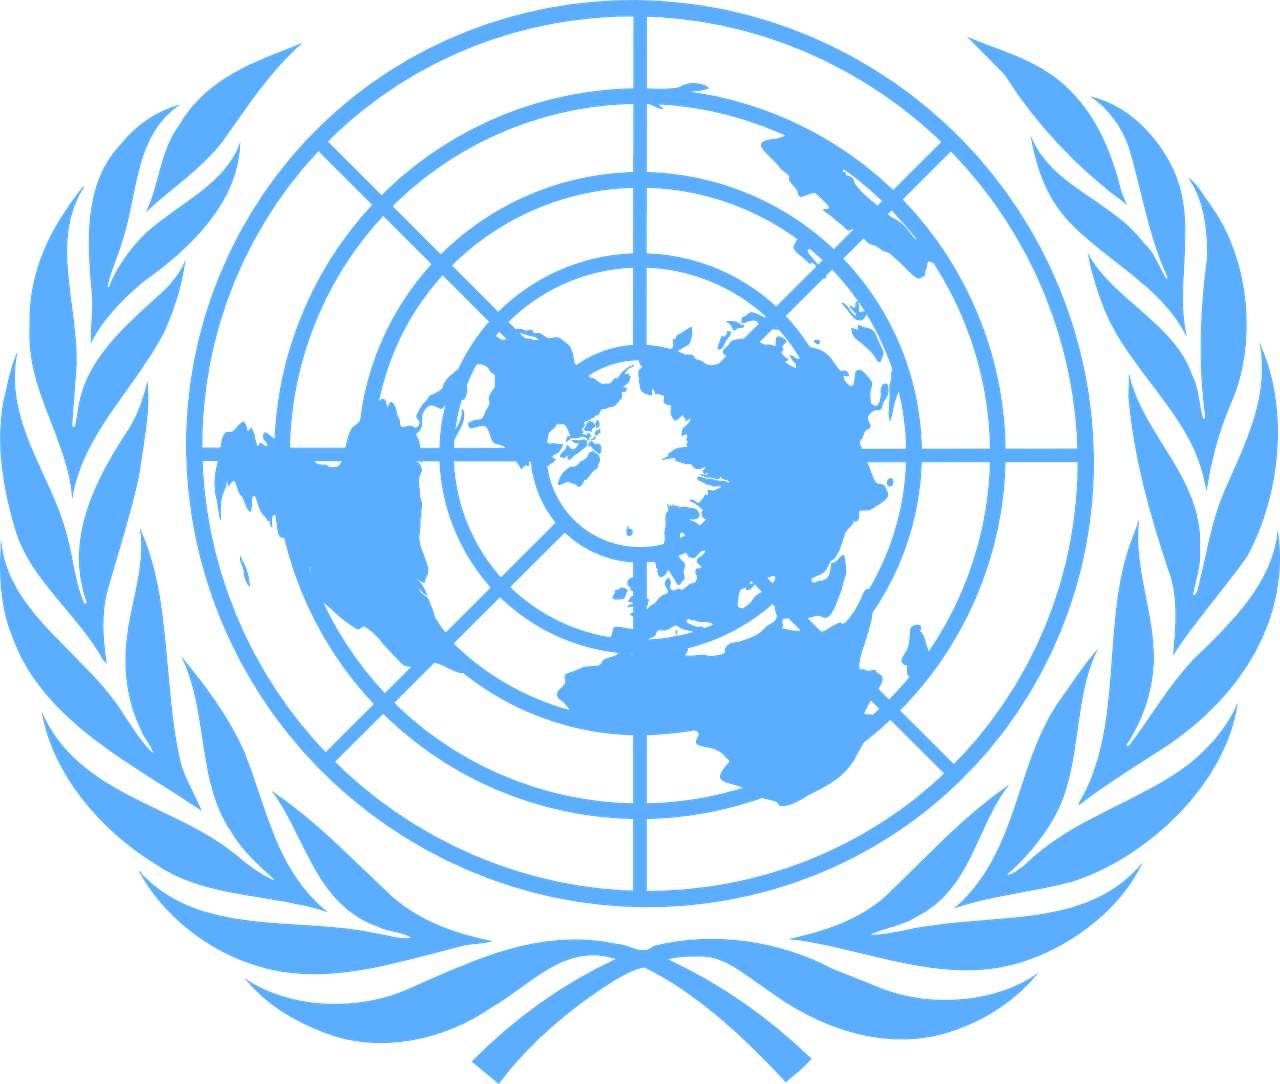 rd session un. Missions clipart nations